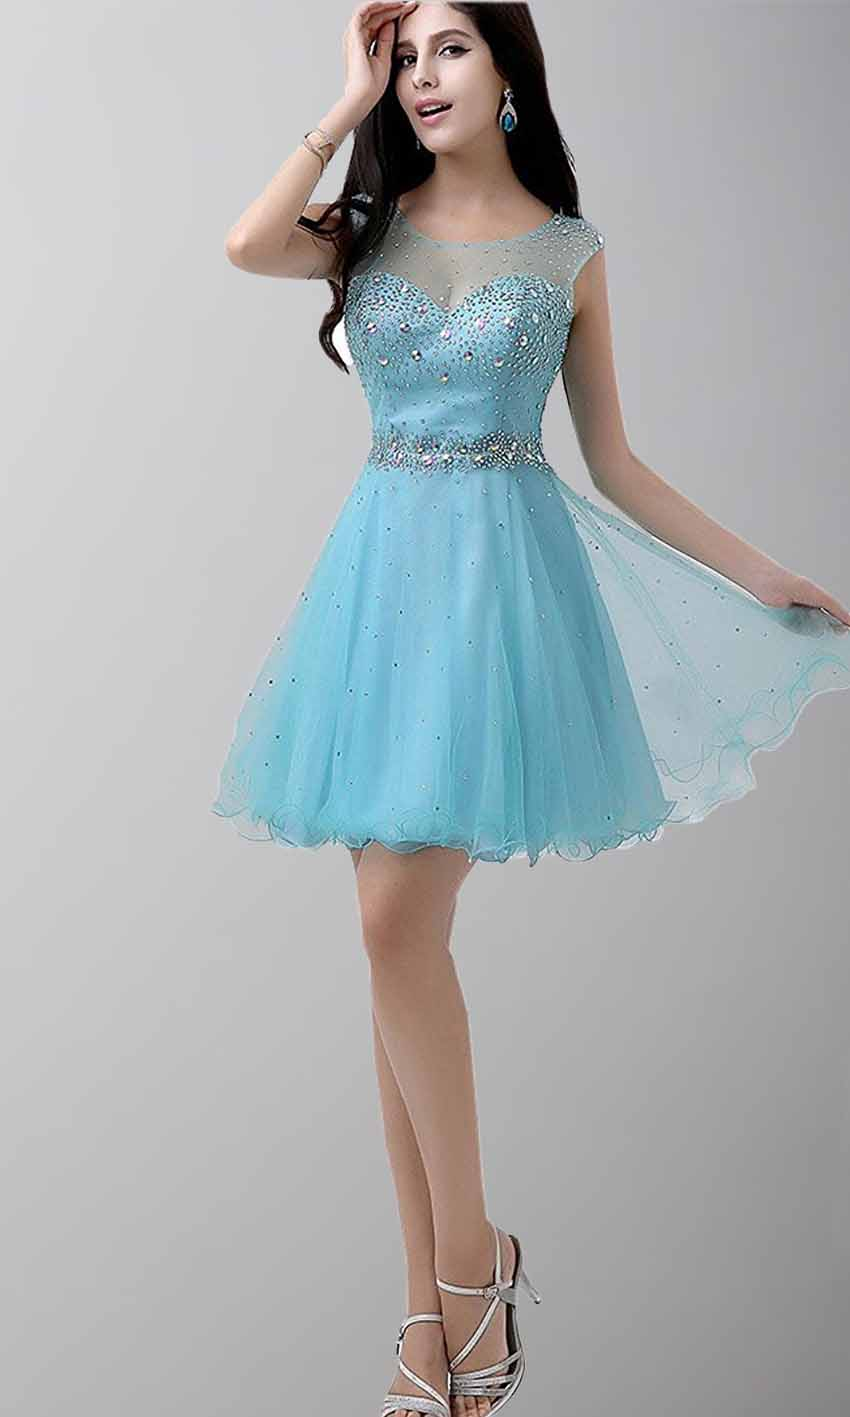 Shining Illusion Sweetheart Short Dresses for Prom KSP471 [KSP471 ...